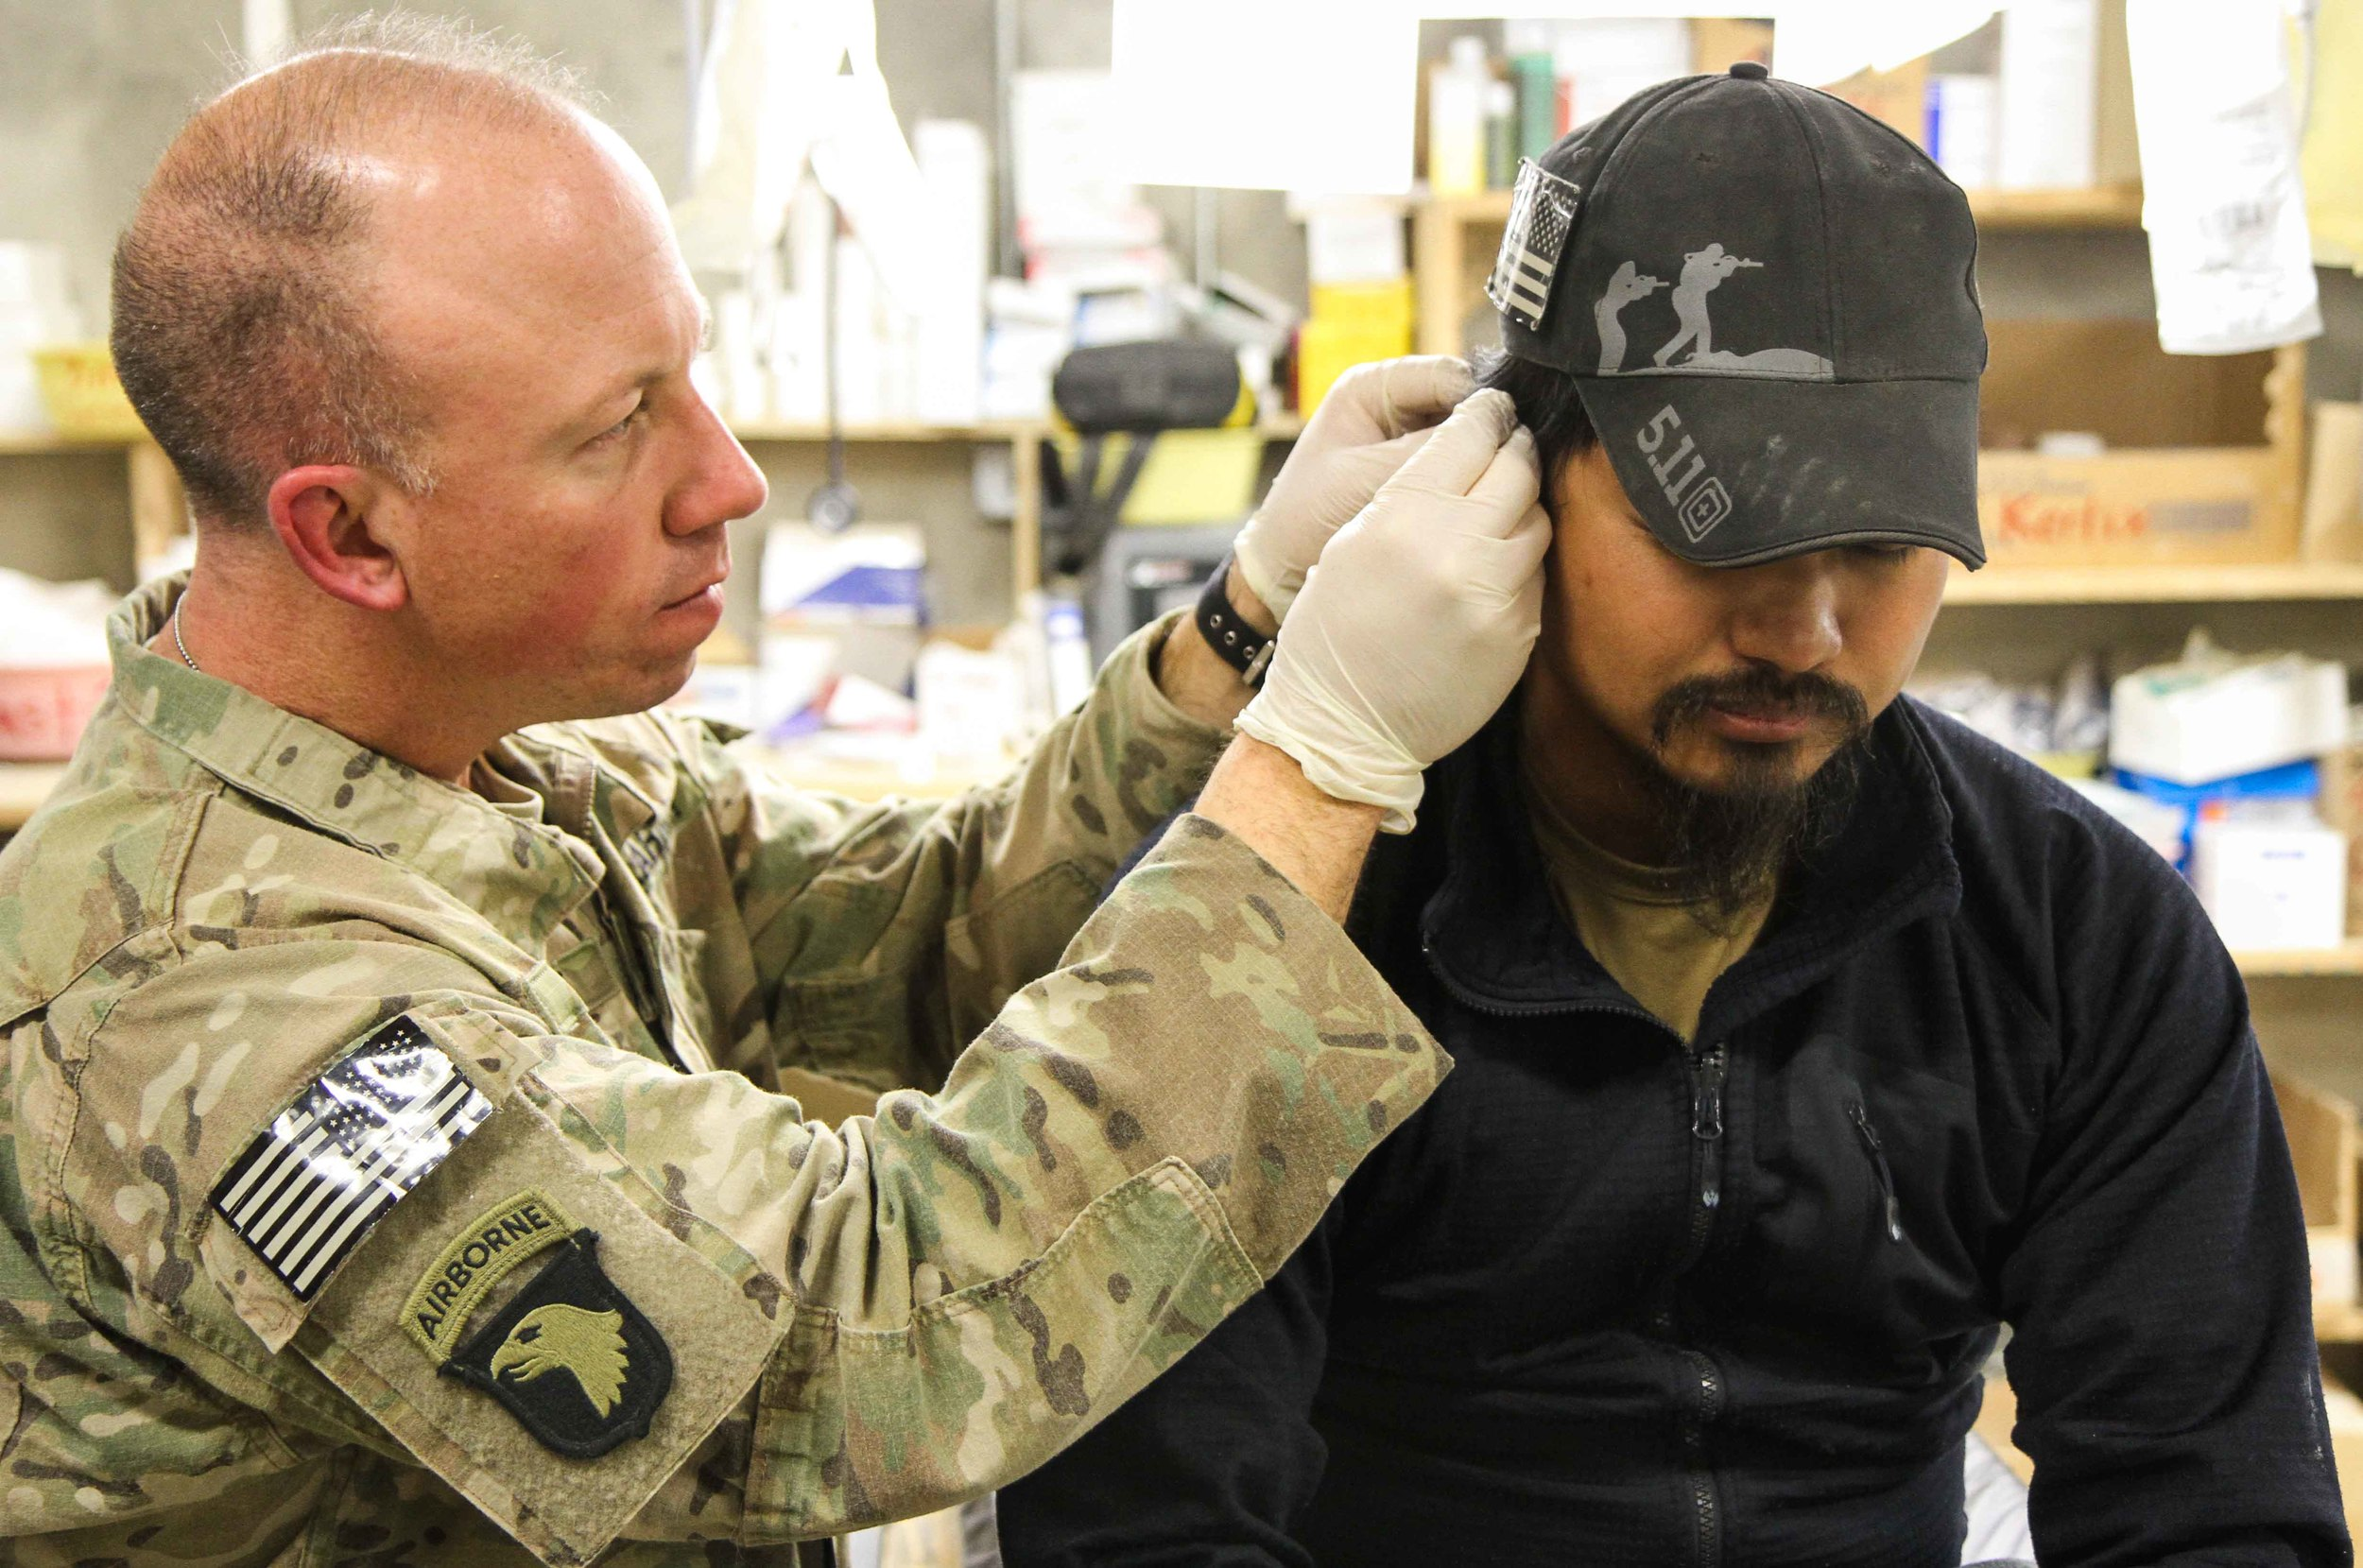 PAKTYA PROVINCE, Afghanistan - 1st Lt. Robert Blume inserts a thin gold needle through a U.S. civilian contractor's ear during a battlefield acupuncture session. (U.S. photo by Spc. Brian Smith-Dutton Task Force 3/101 Public Affairs)